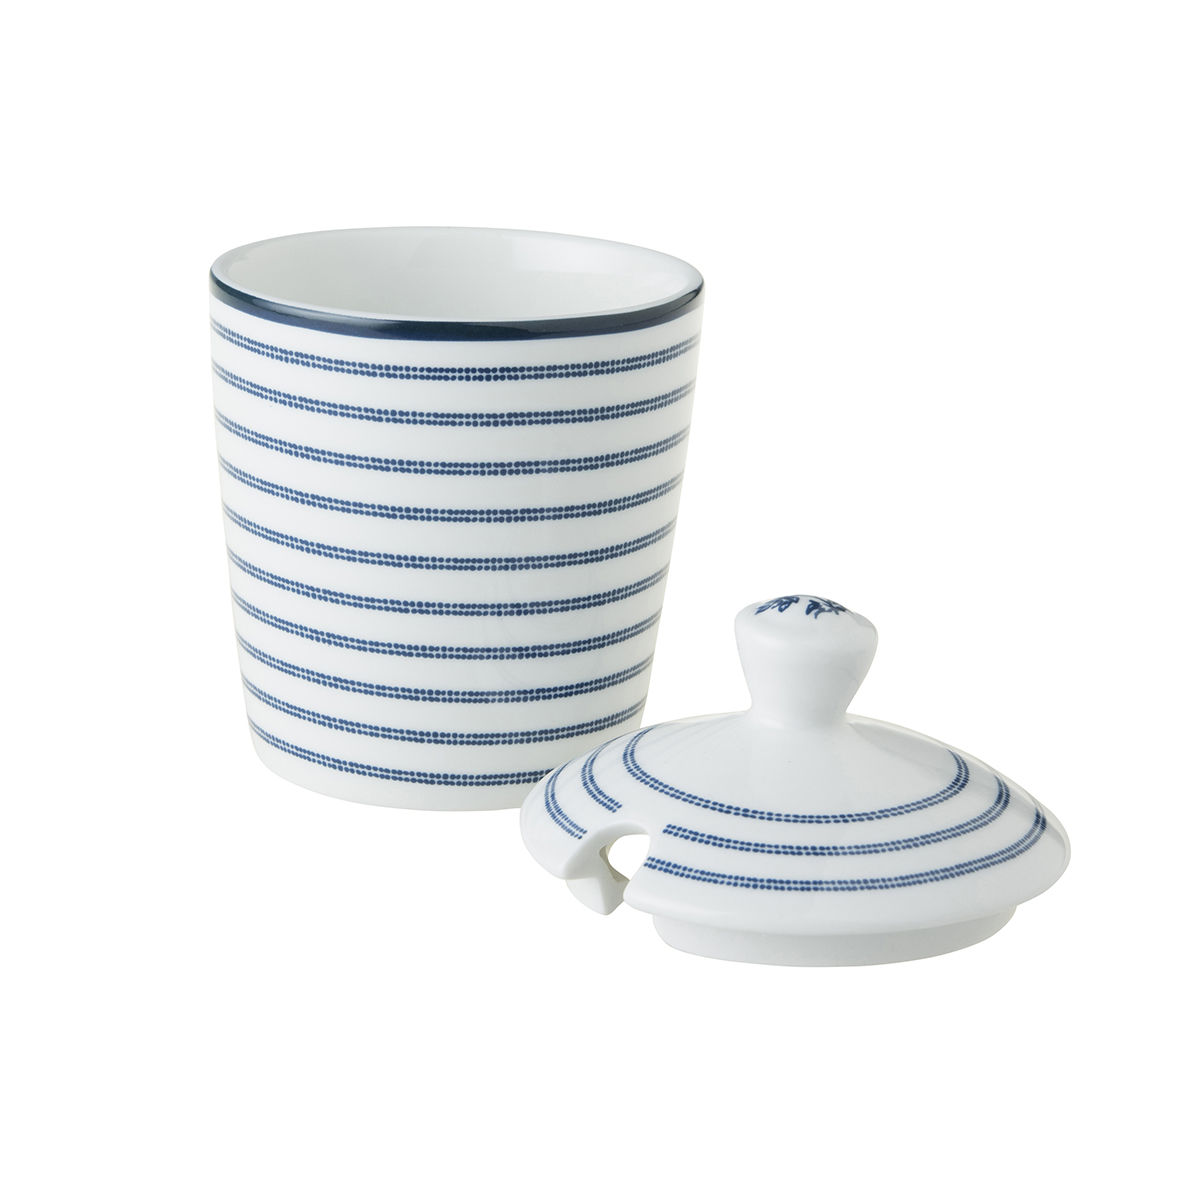 Laura Ashley Sugar Bowl in Candy Stripe - product images  of